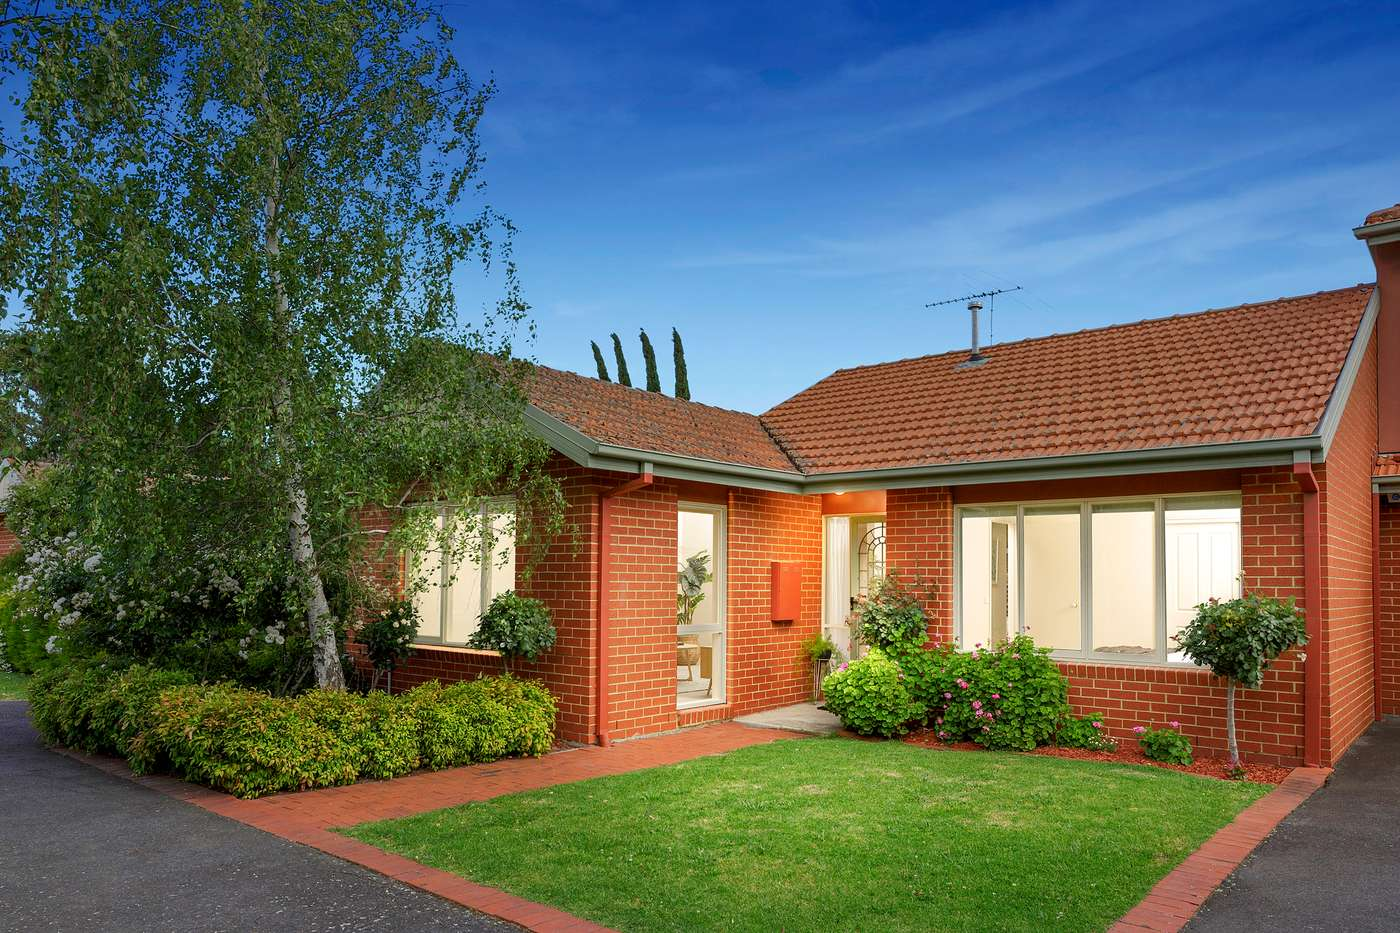 Main view of Homely villa listing, 4/95 Balmoral Avenue, Pascoe Vale South, VIC 3044